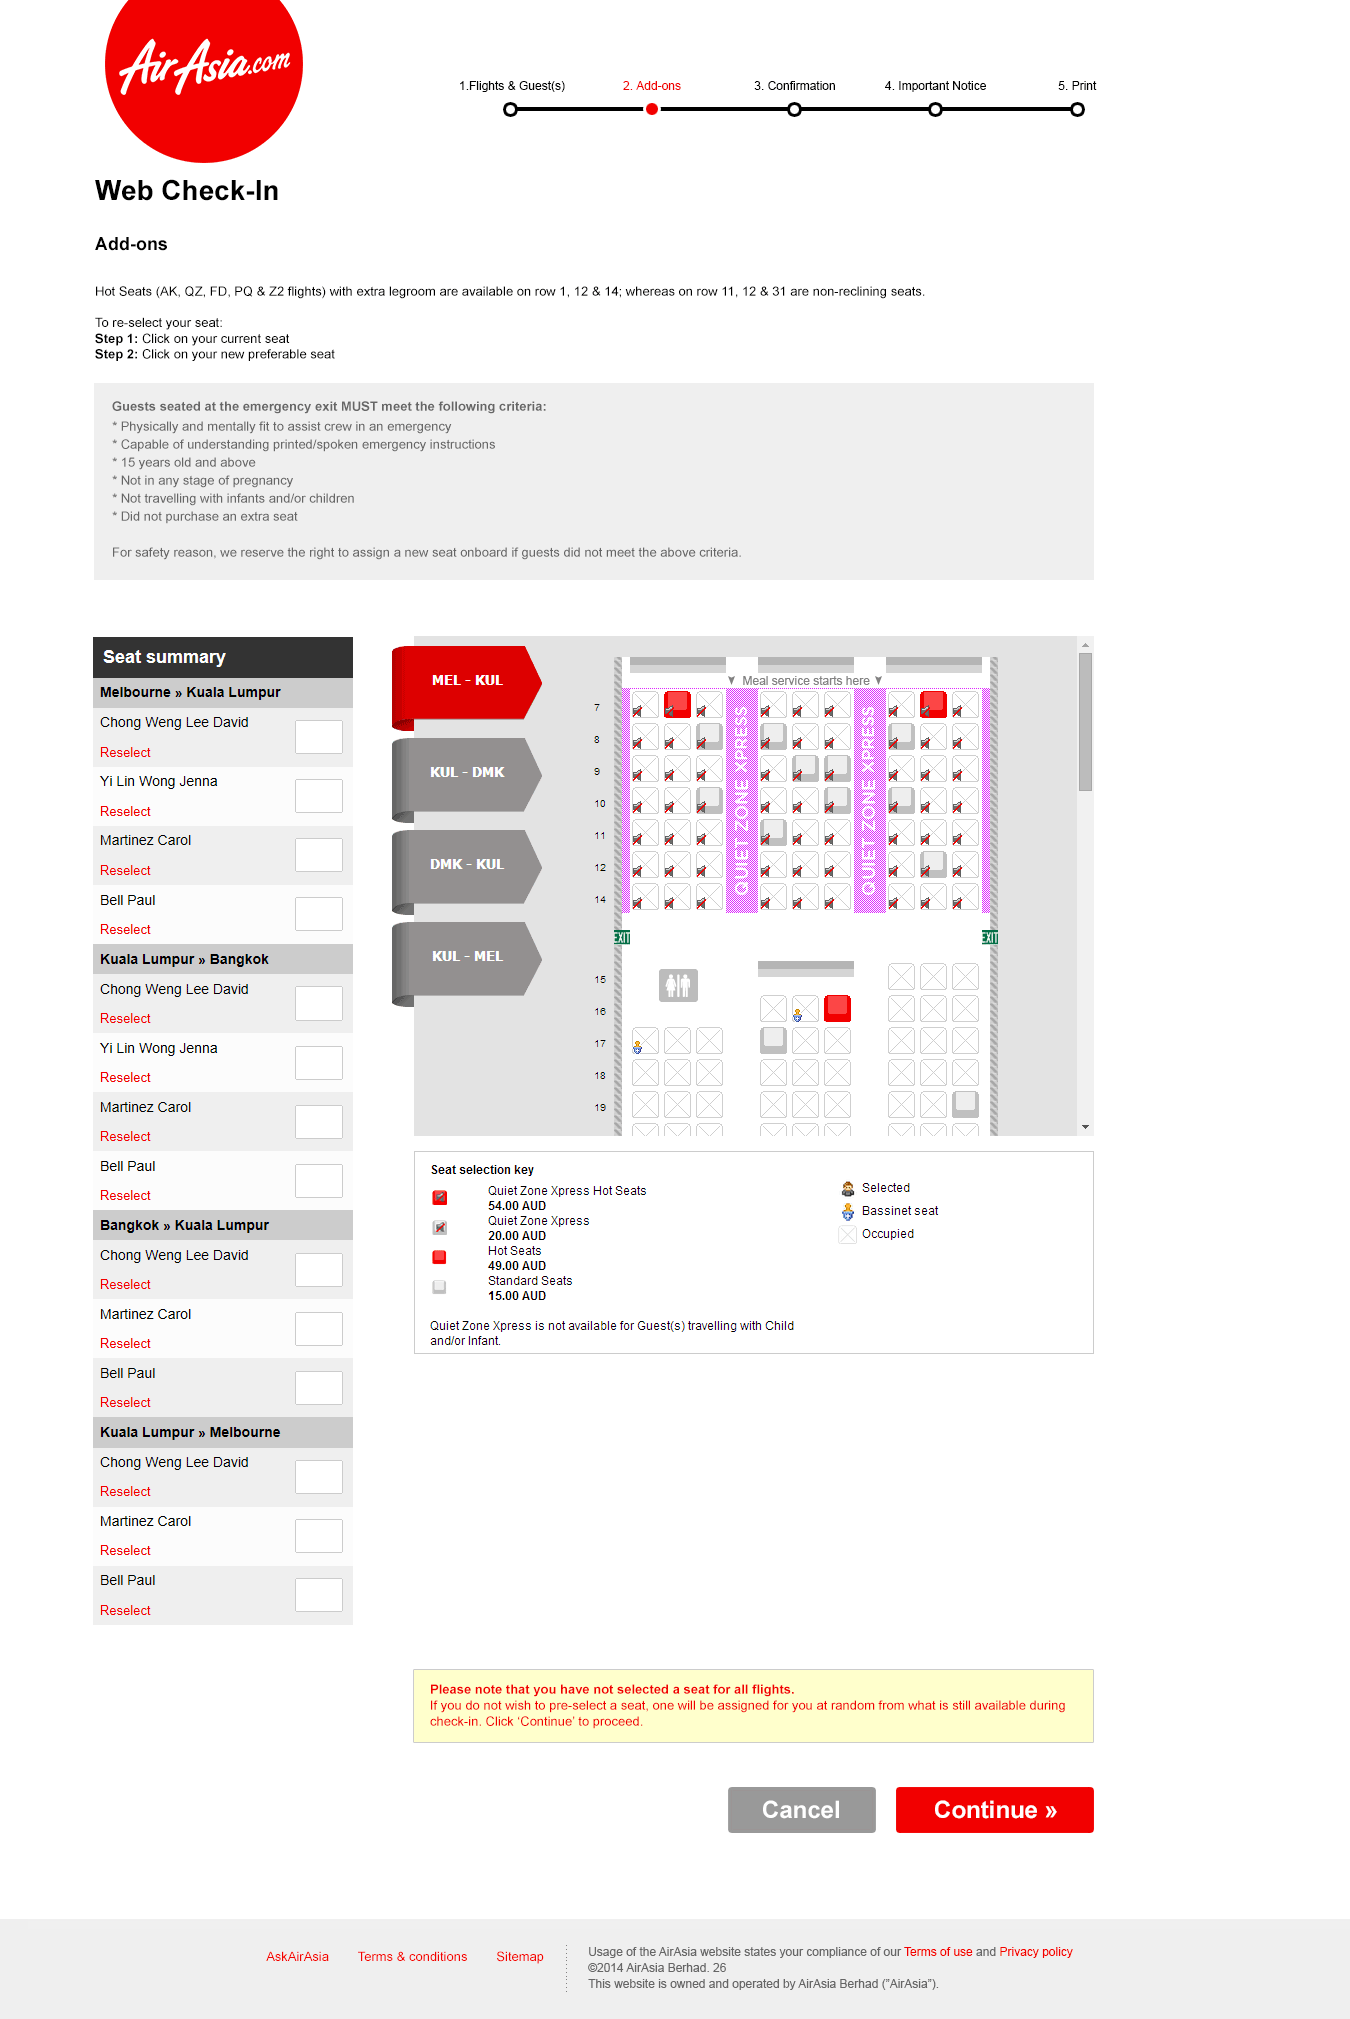 Web Check-in selecting seat for flights screen